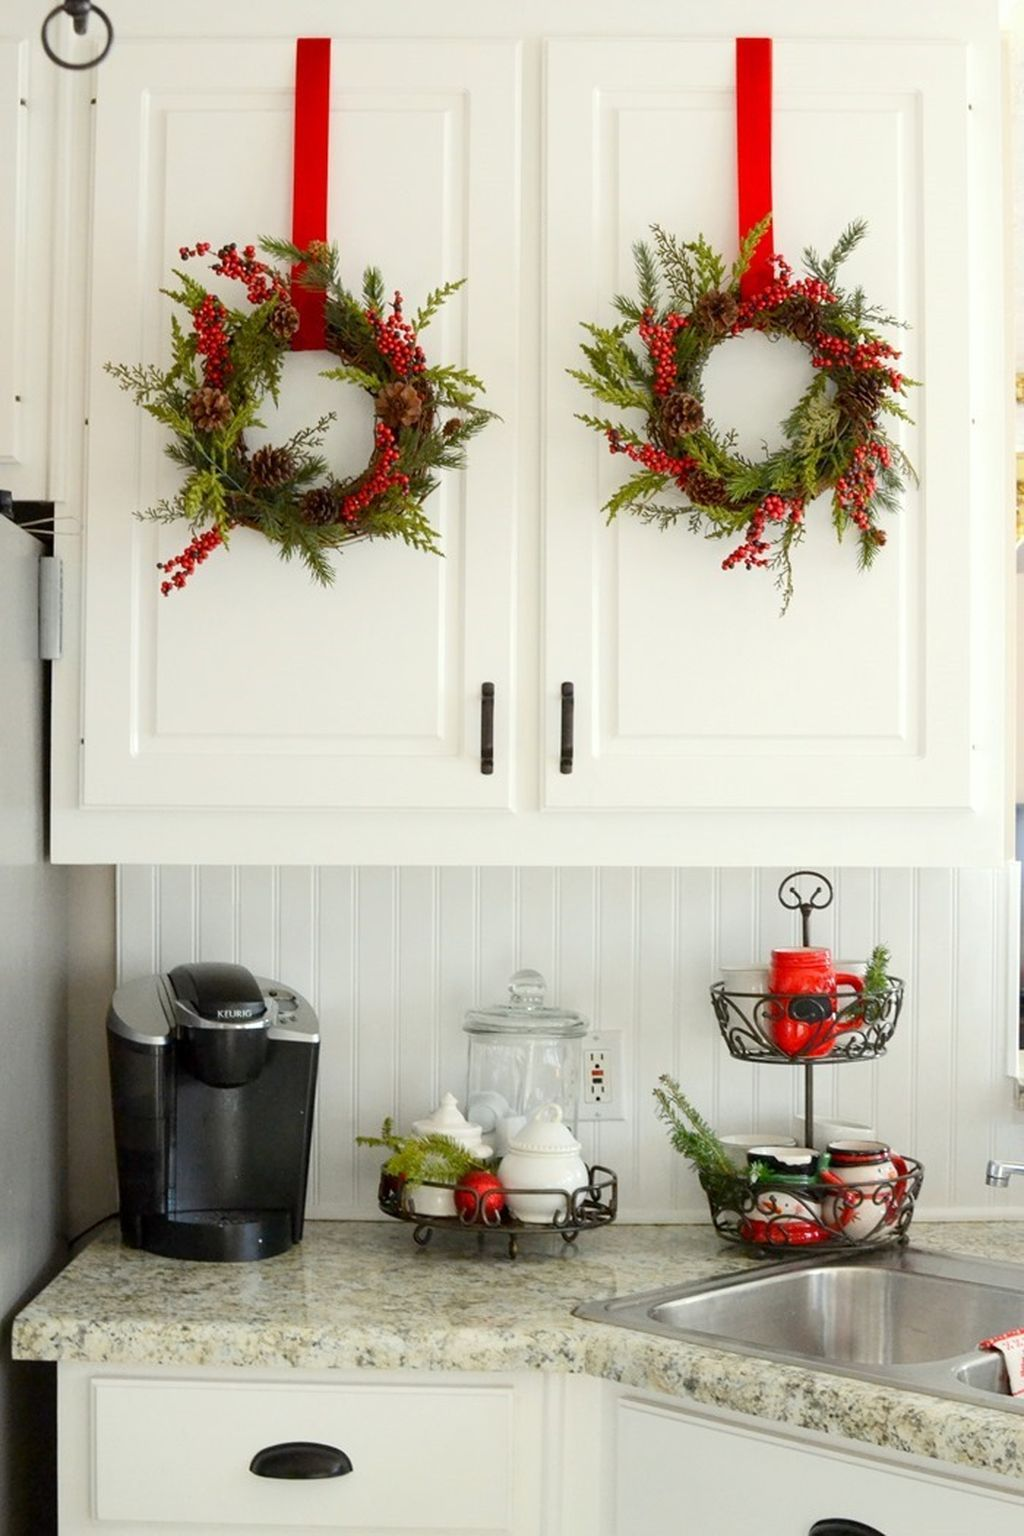 90 adorable rustic christmas kitchen decoration ideas homedecorish christmas kitchen decor on kitchen xmas decor id=68193